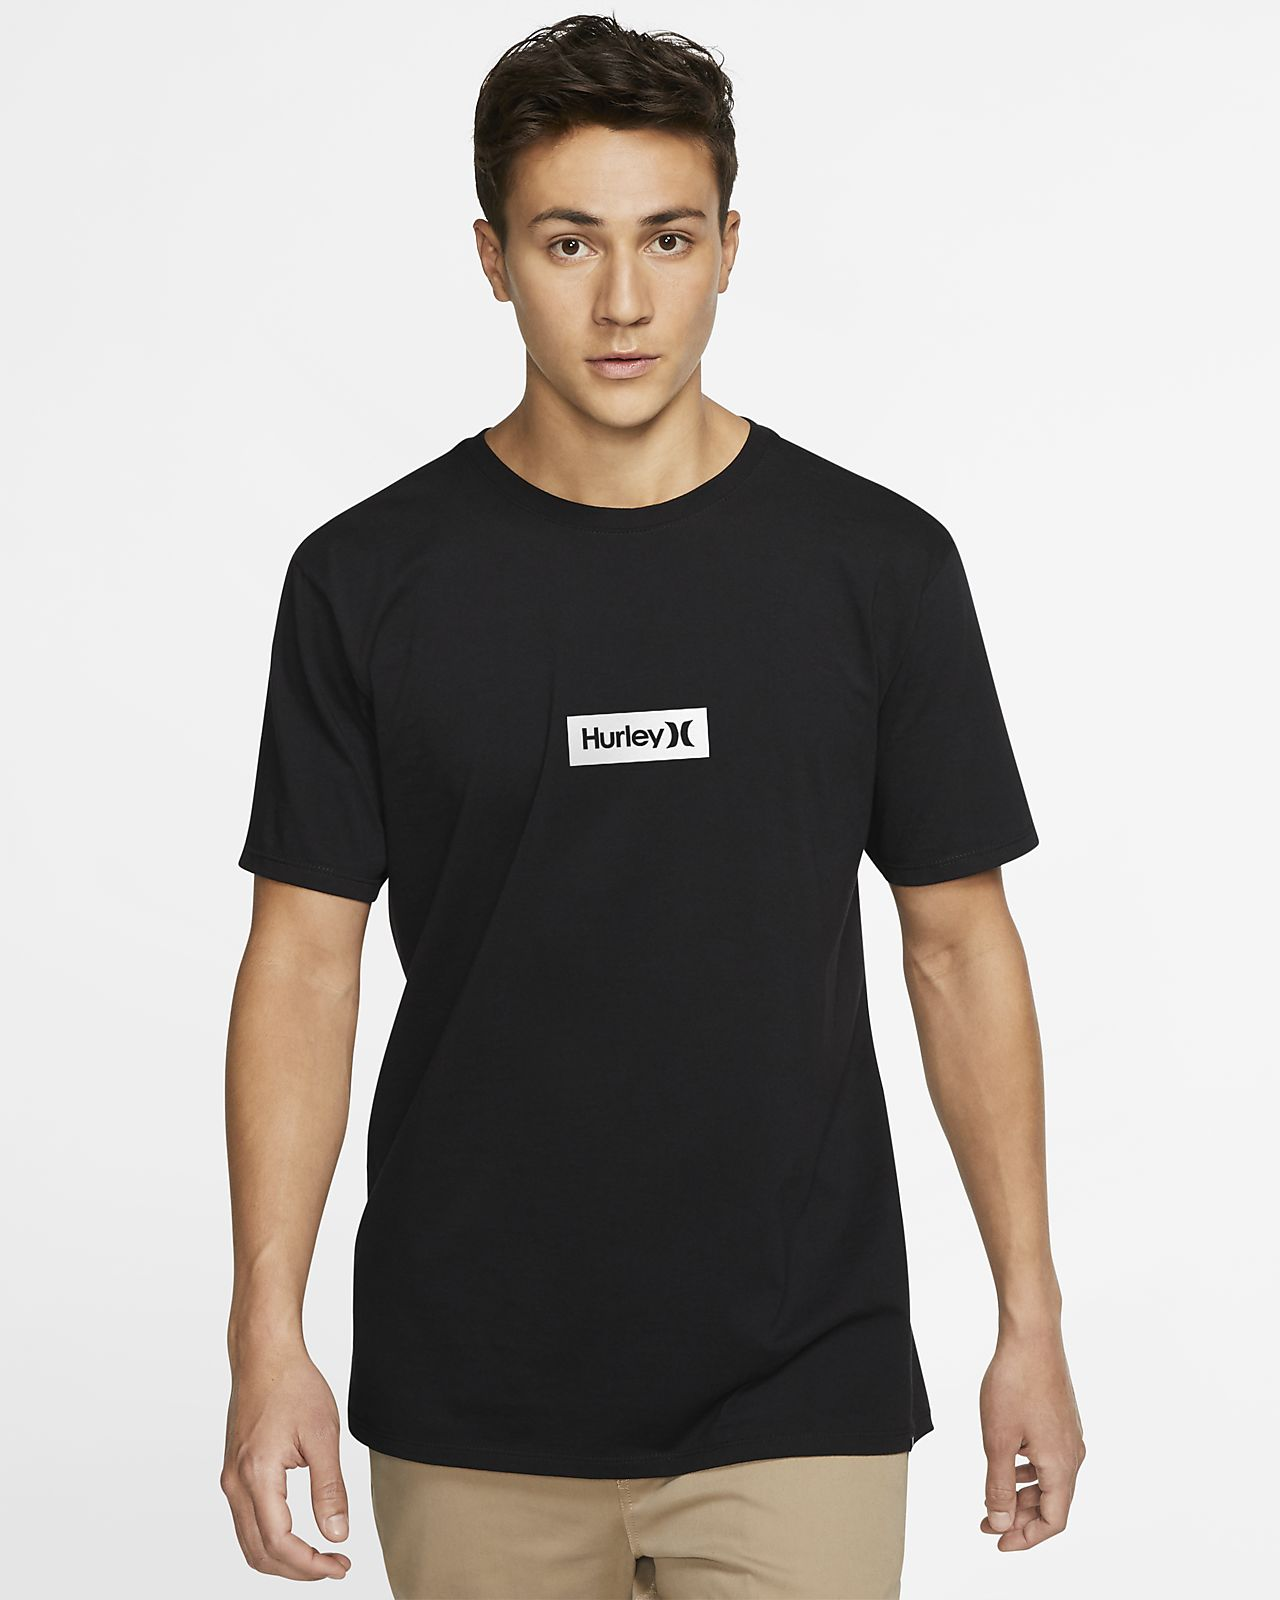 Hurley Premium One And Only Small Box Premium Fit T-shirt til mænd